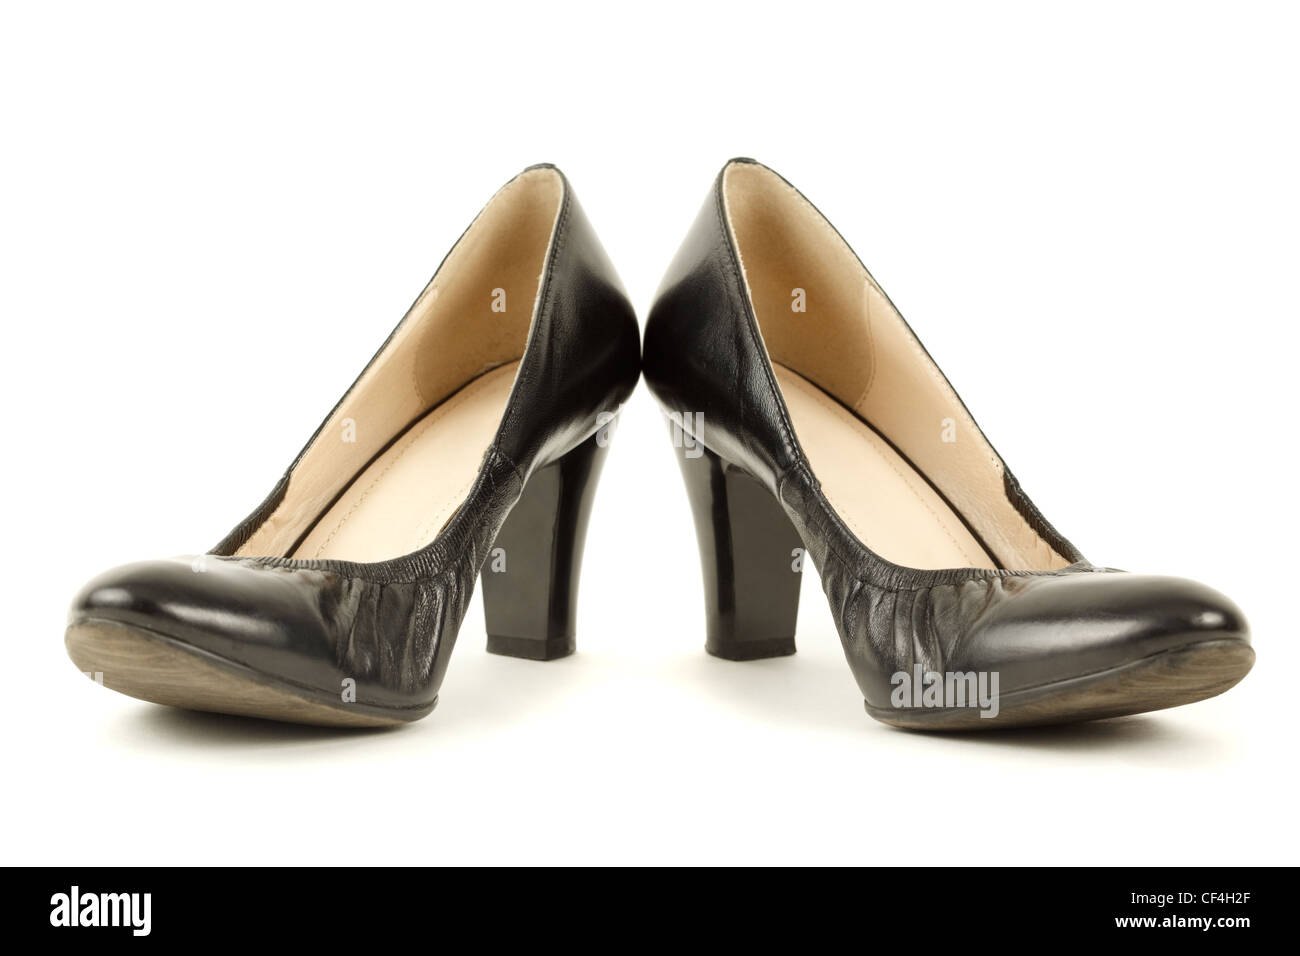 Pair of black women's high heels. Isolated on white background. - Stock Image